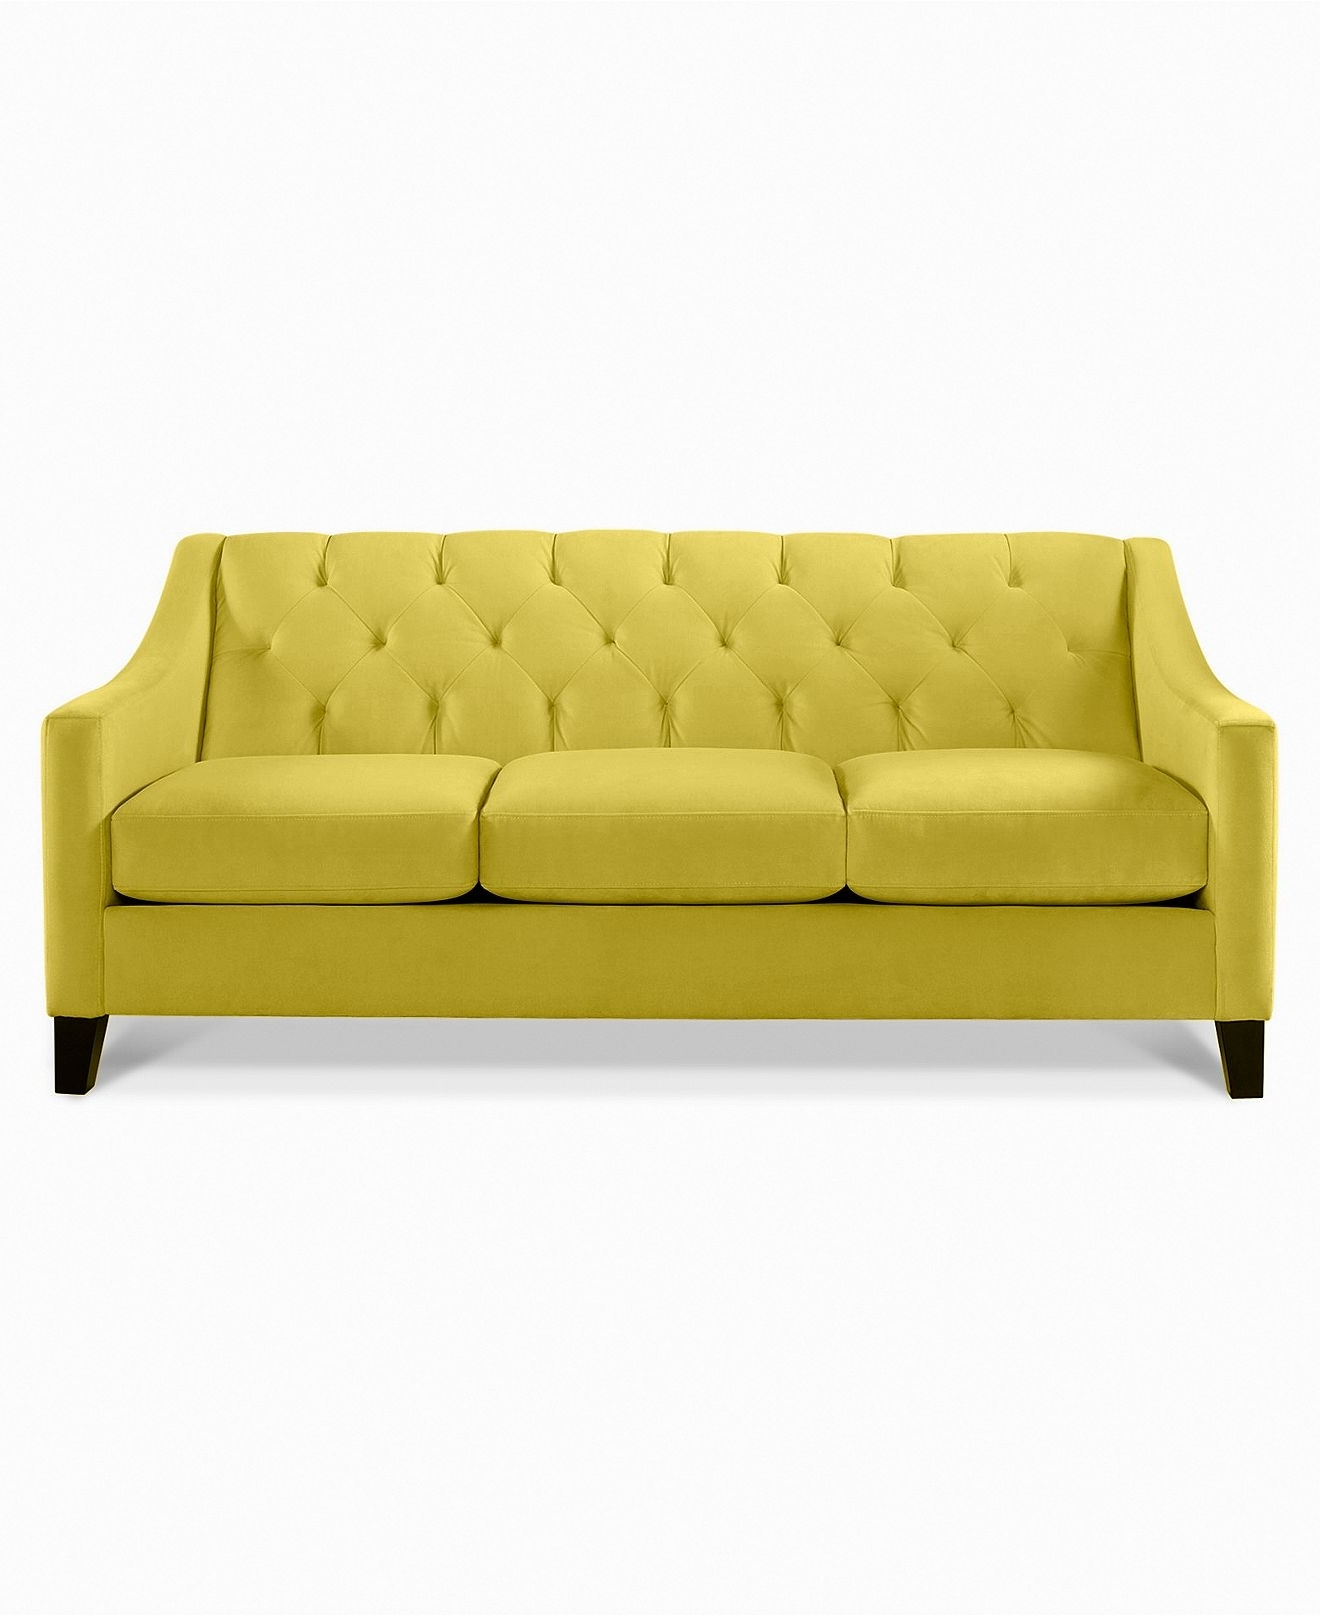 2019 Dufresne Sectional Sofas With Furniture : Button Tufted Fabric Sofa Sofa Dallas Furniture Ottawa (View 11 of 20)